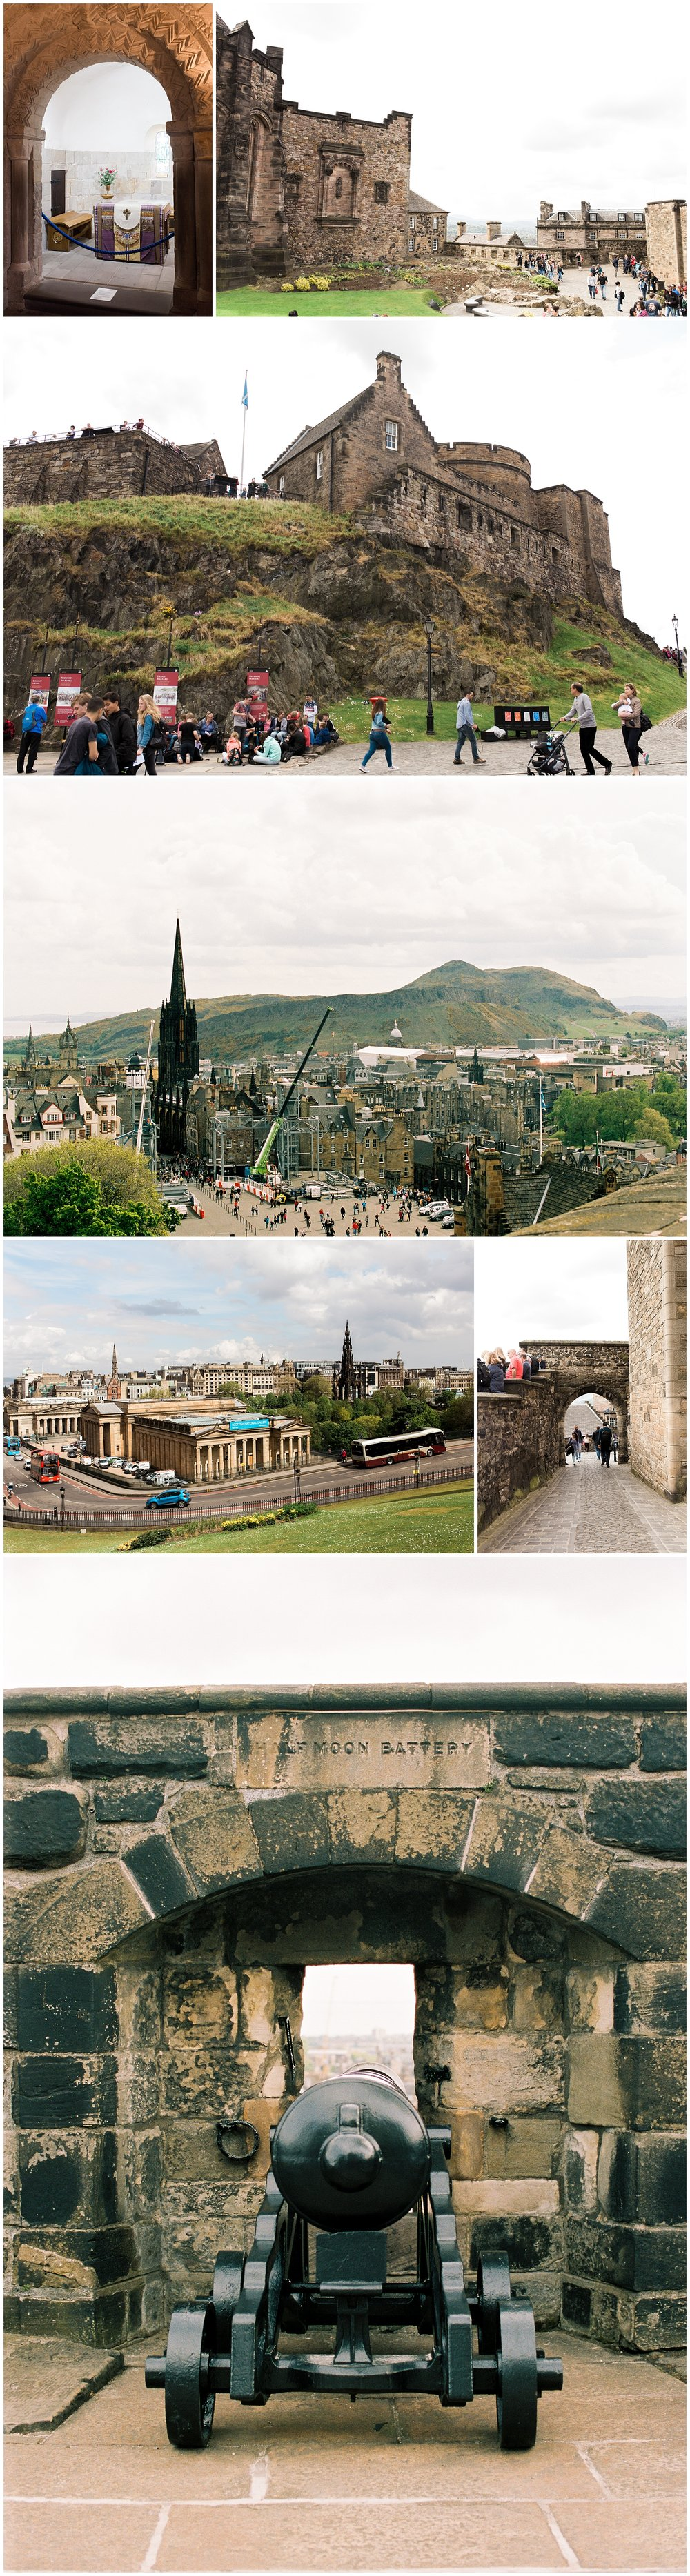 Edinburgh_Travel_Photographer_0011.jpg